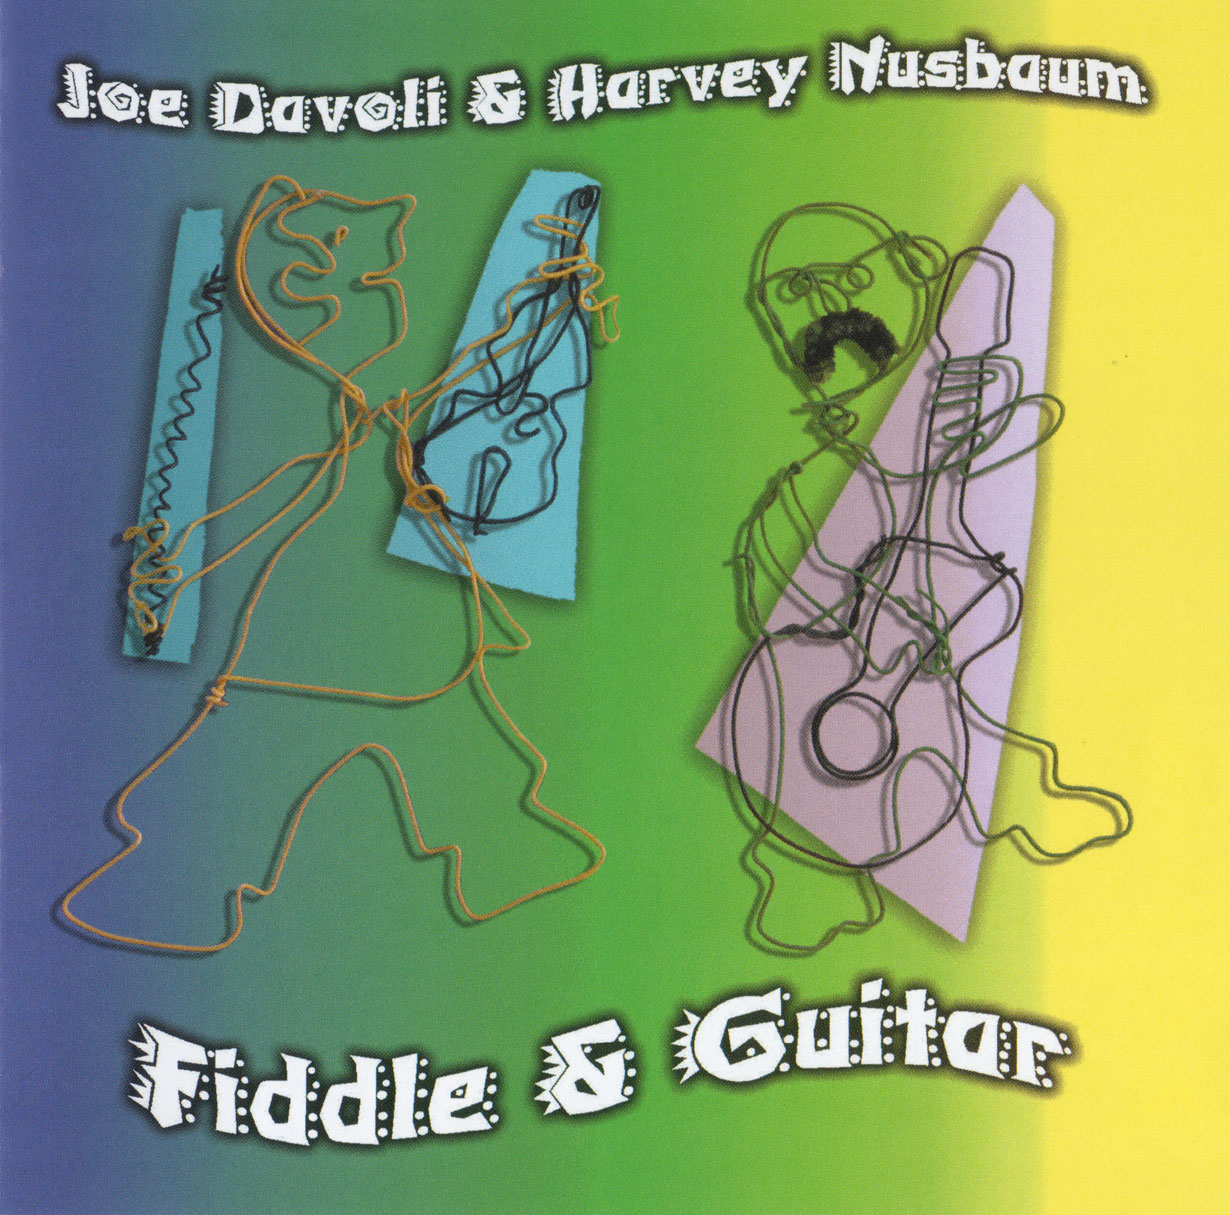 Joe Davoli & Harvey Nusbaum - Fiddle & Guitar